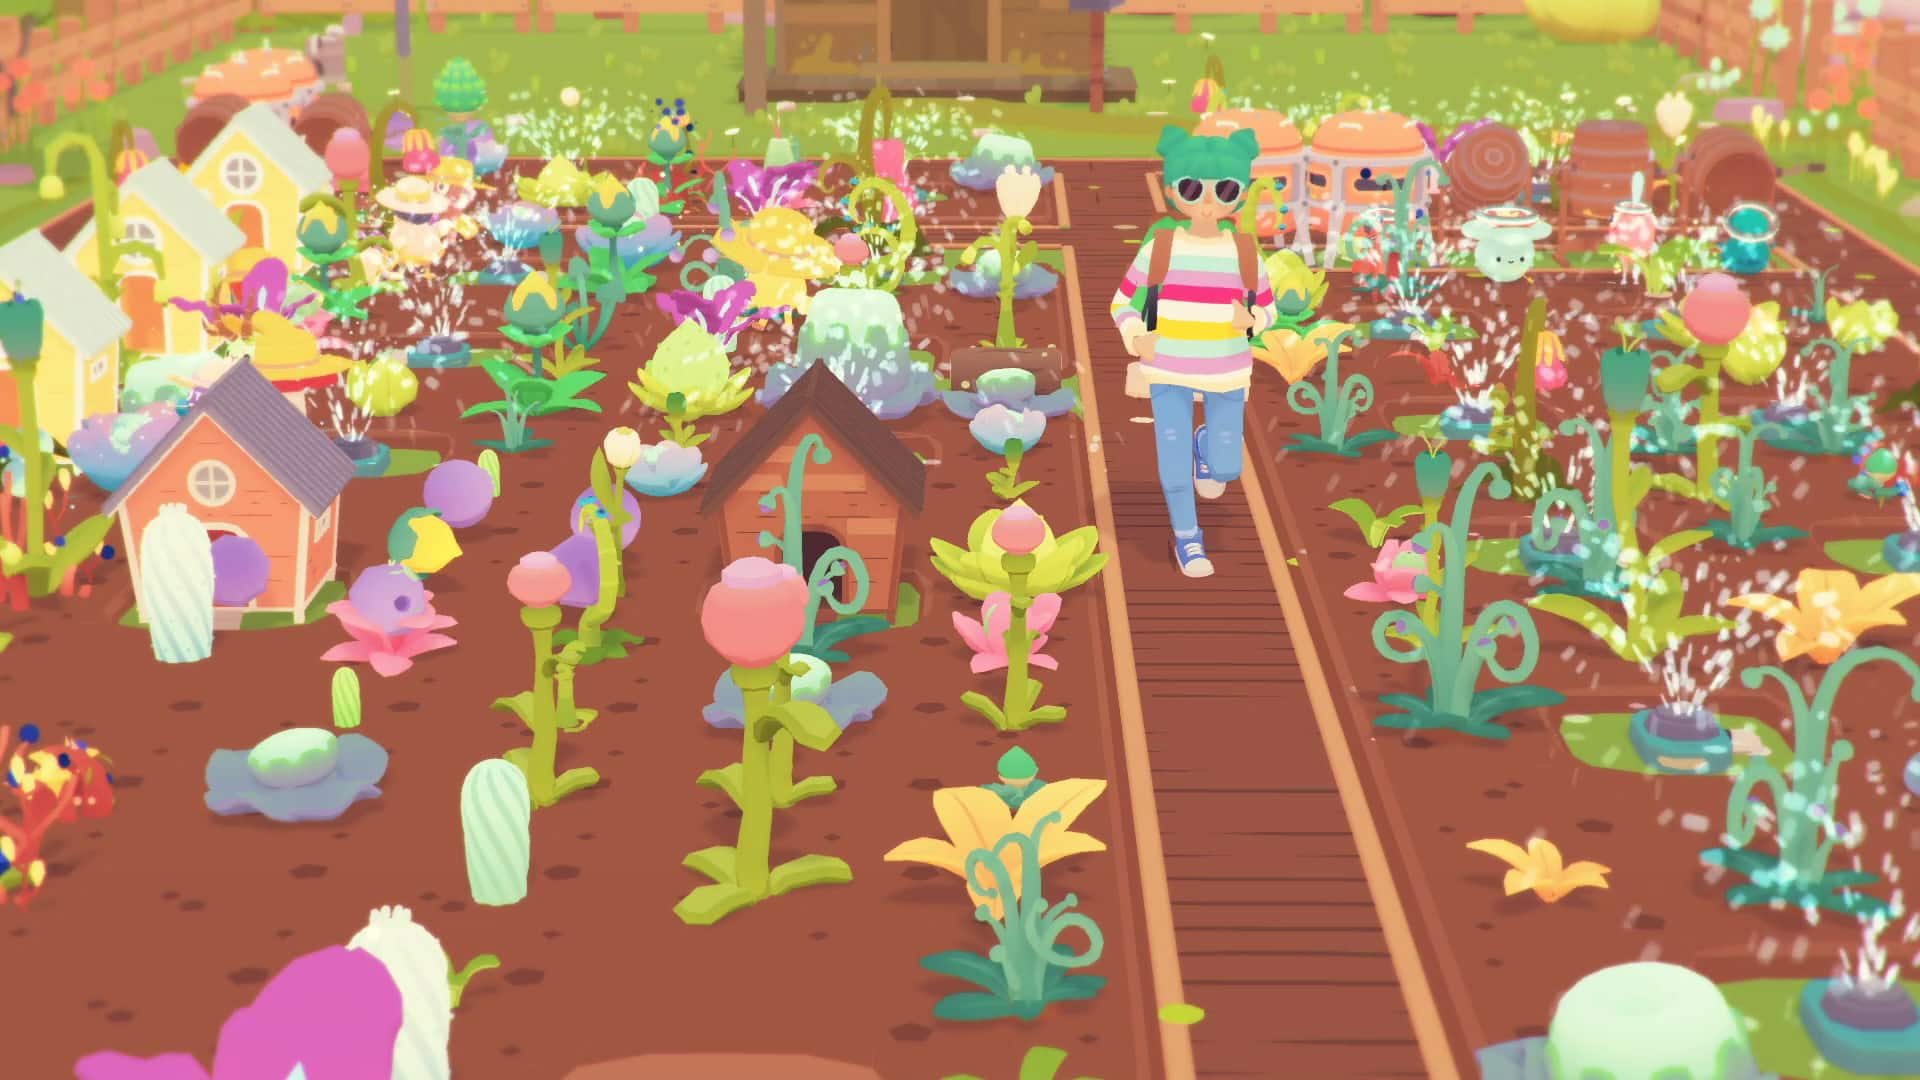 early access Ooblets preview Glumberland Pokémon Stardew Valley dance battle beat serene gameplay